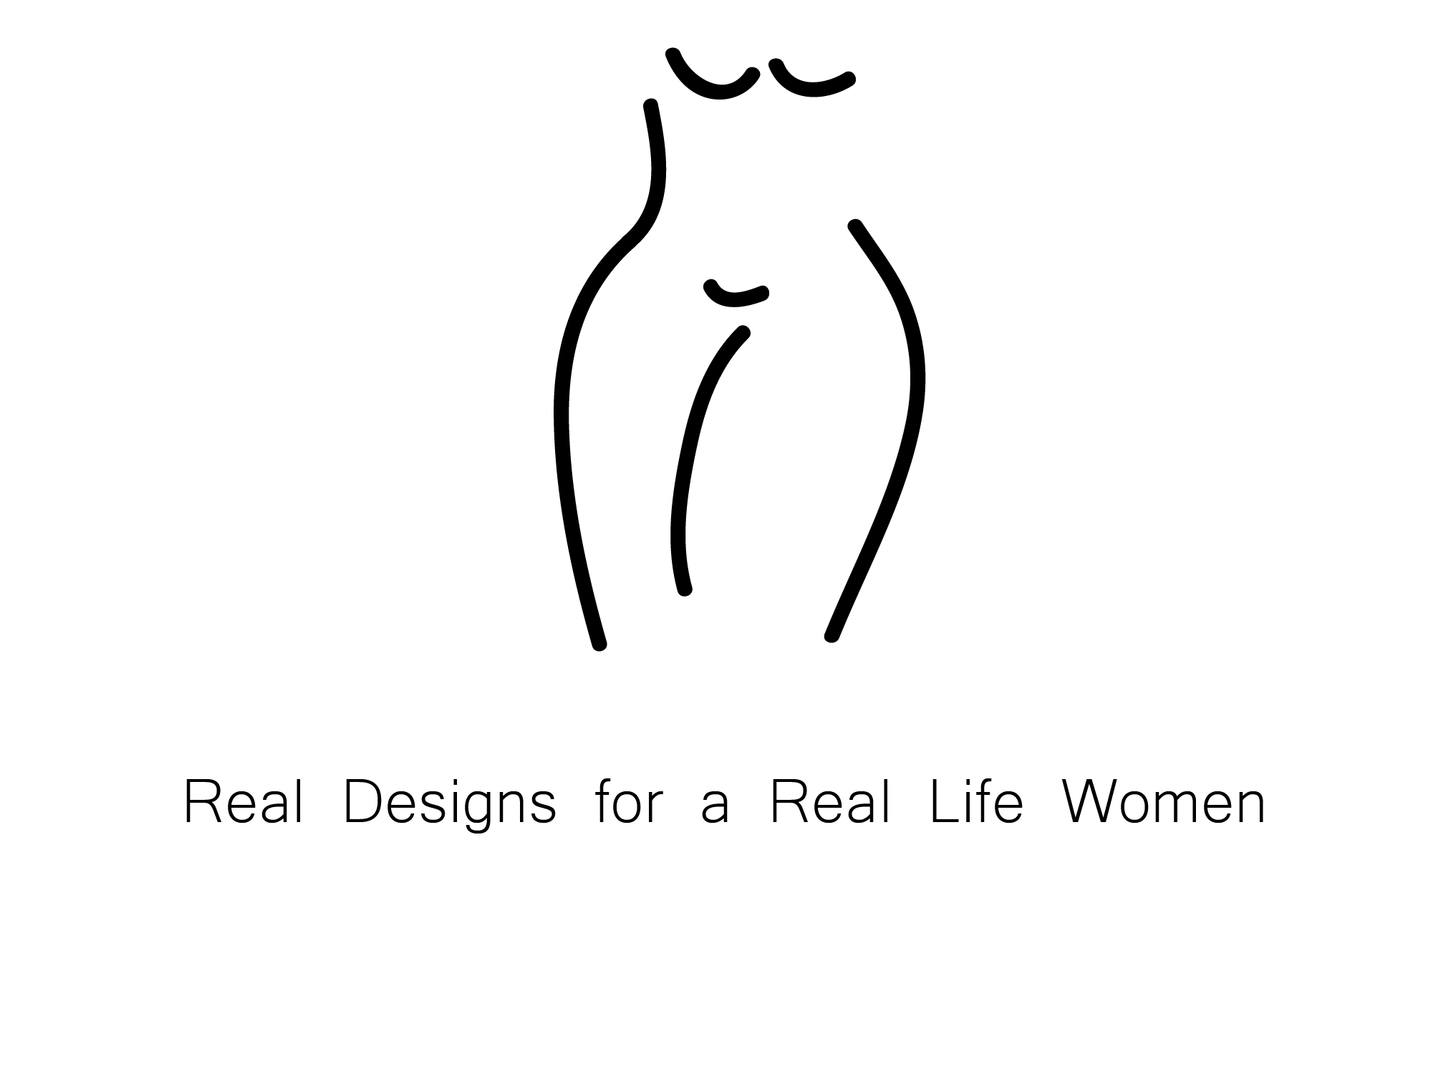 Real designs for a real-life woman.